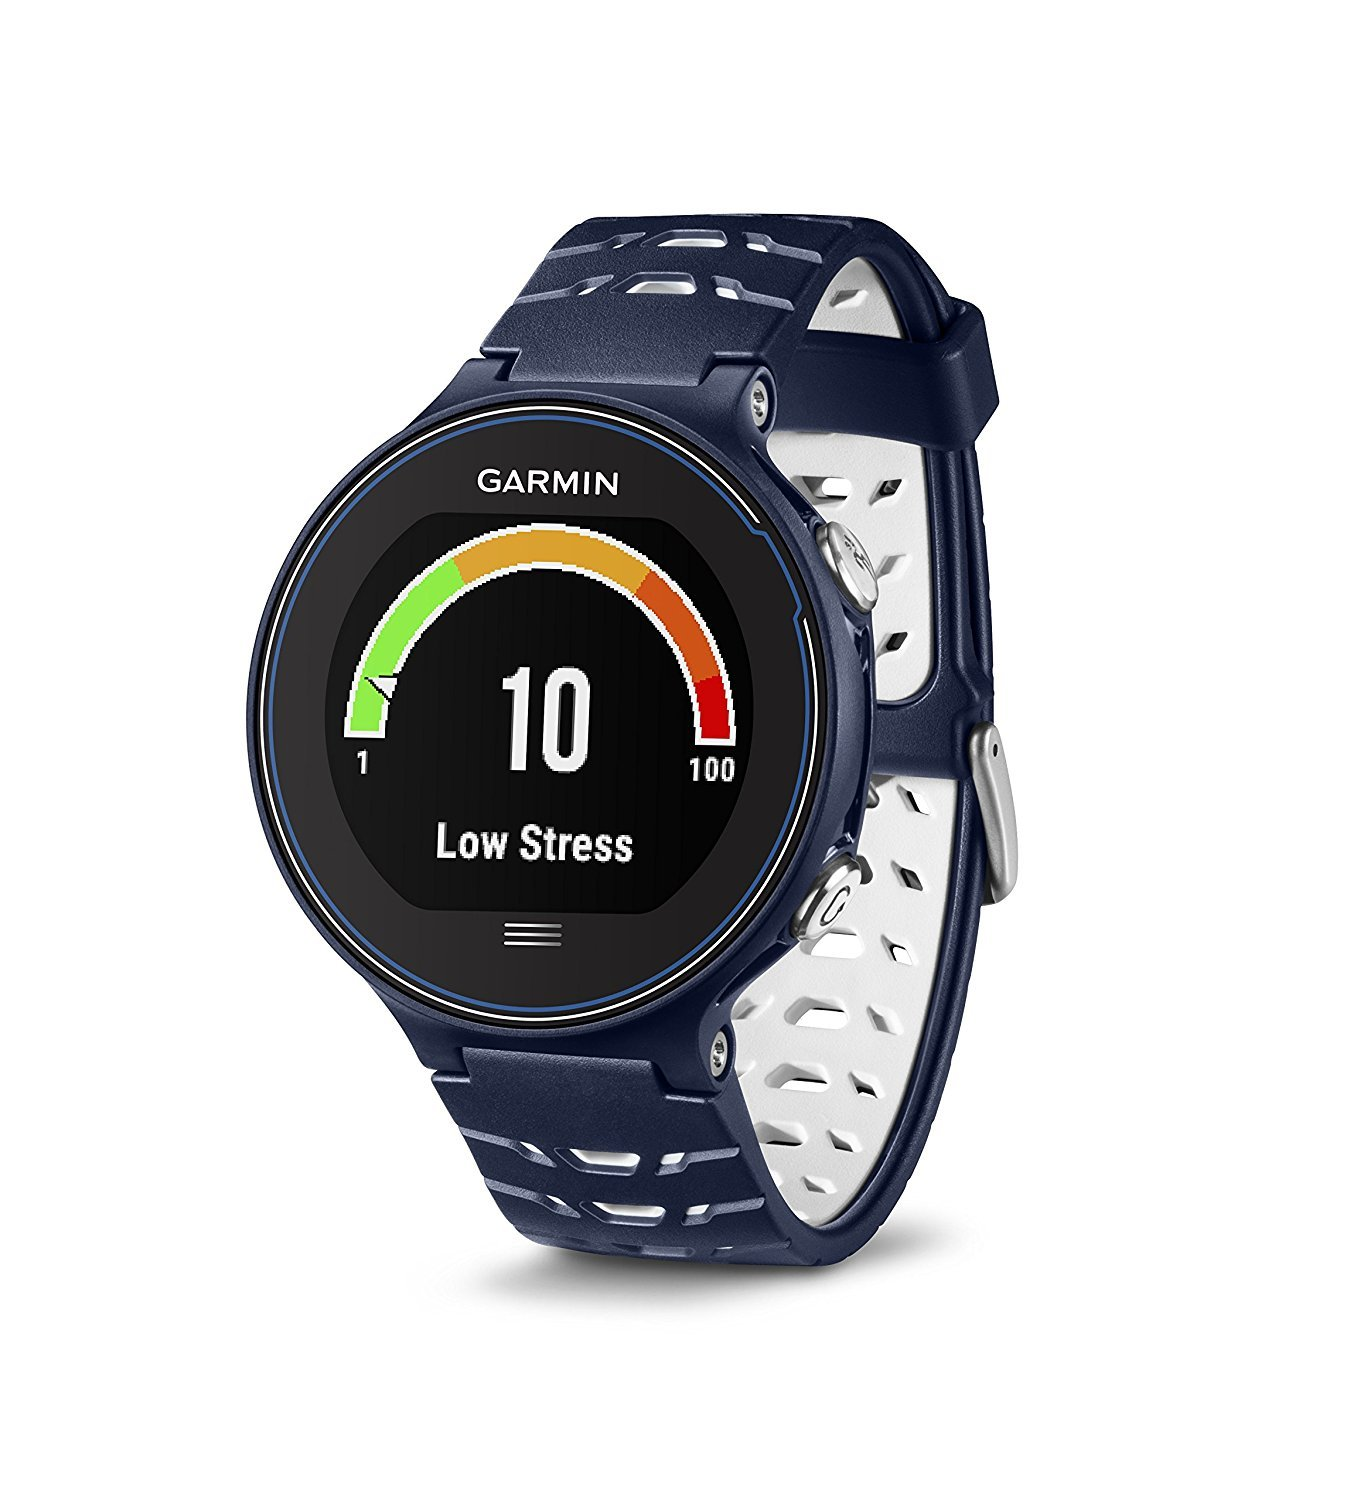 Garmin Forerunner 630 - Midnight Blue (Certified Refurbished) by Garmin